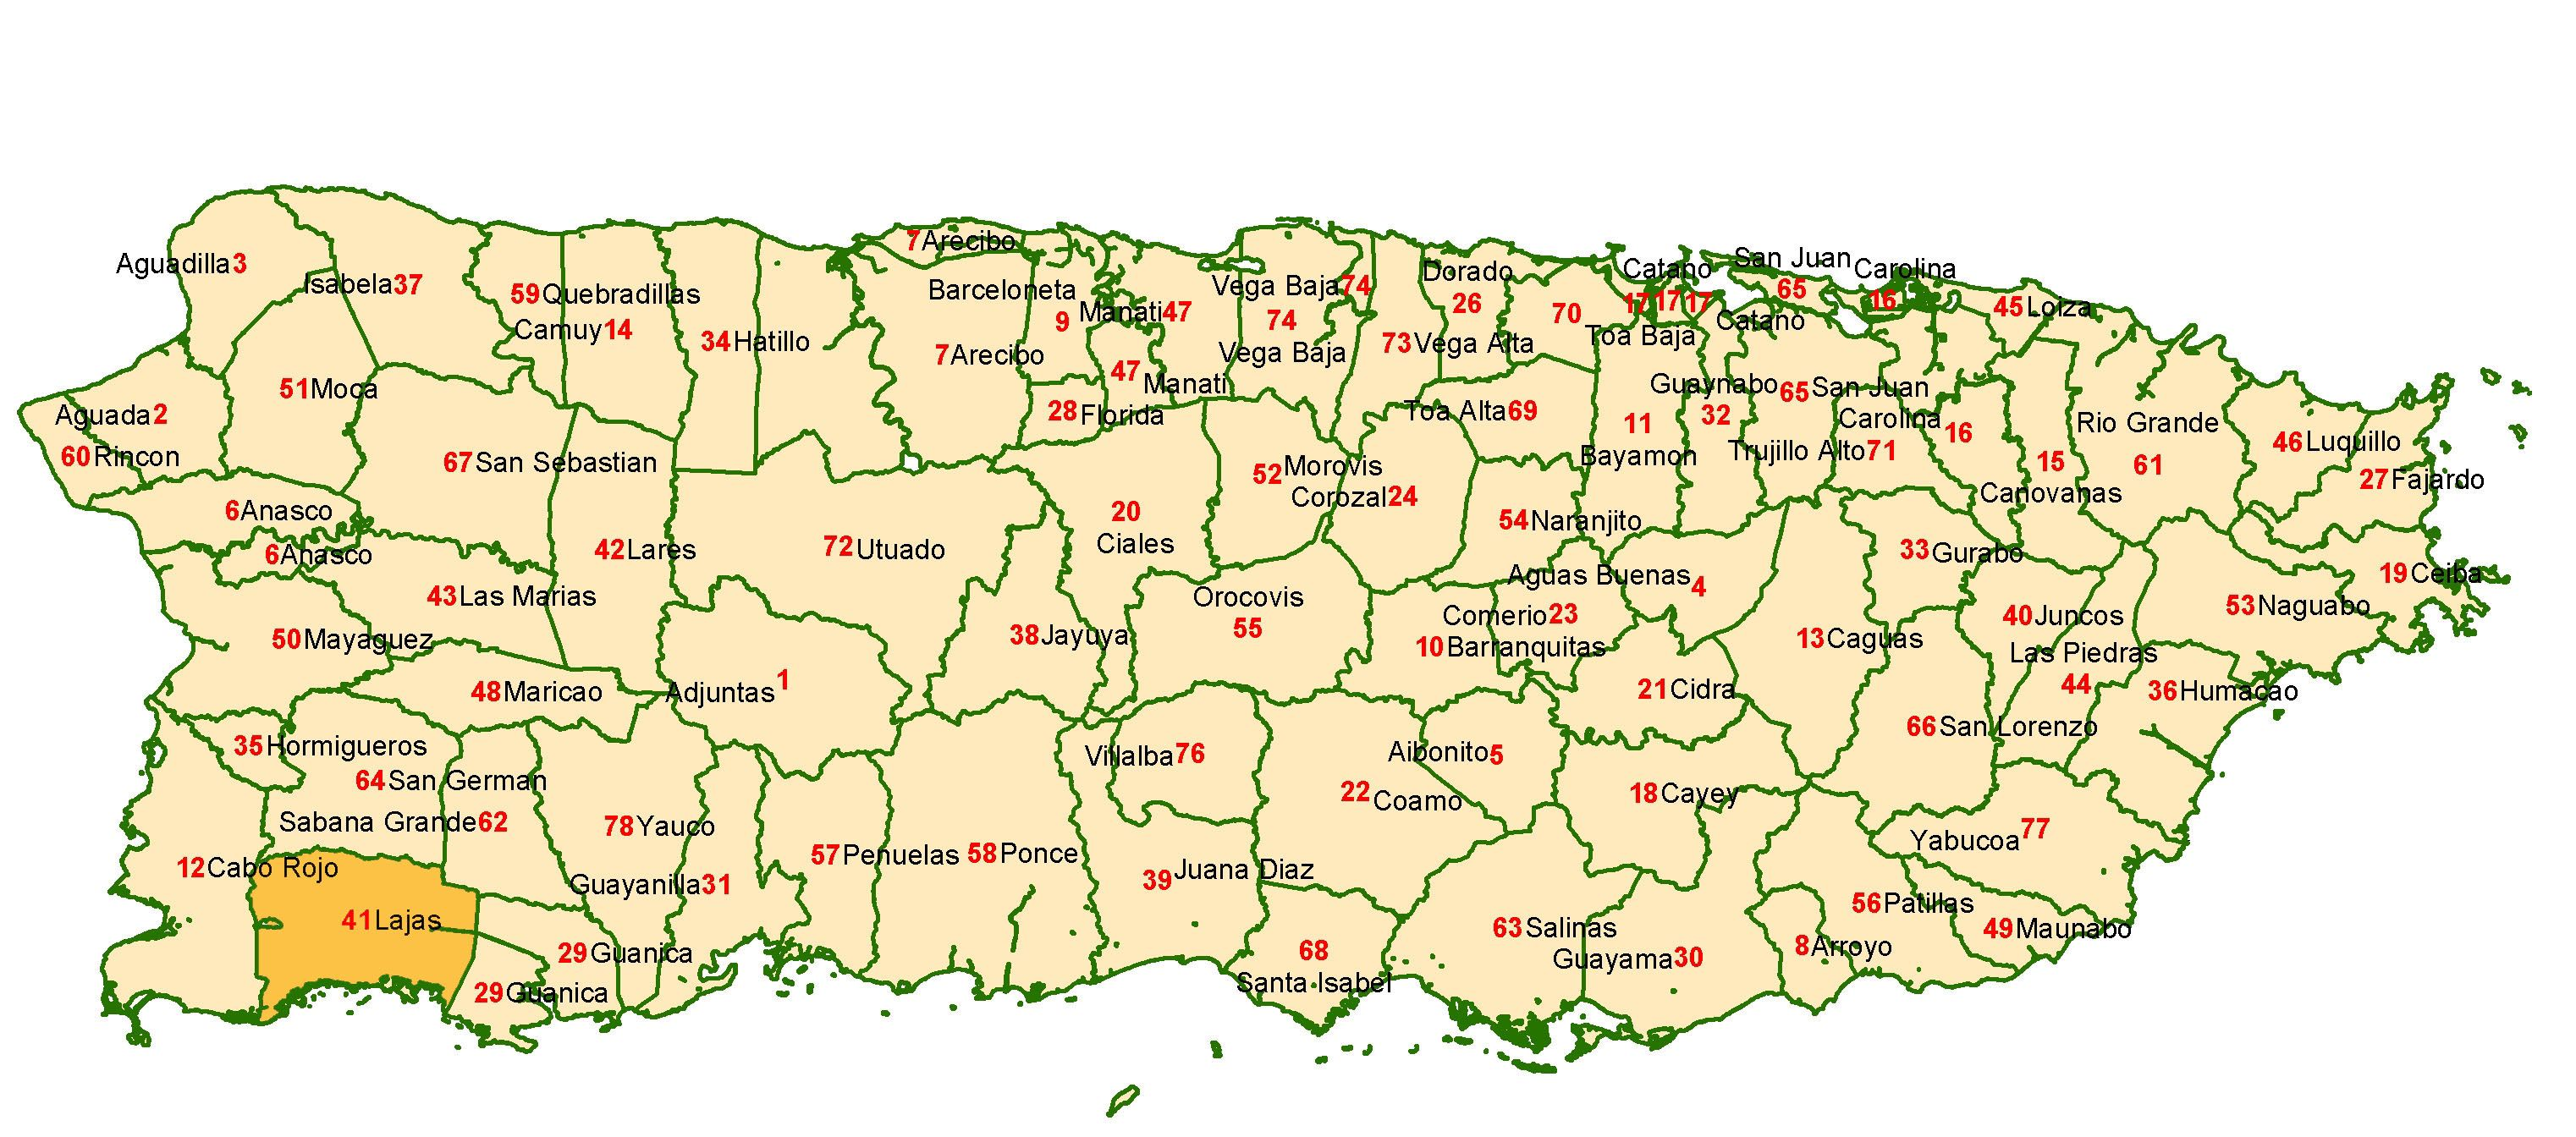 pictures of puerto rico | Large detailed administrative map of Puerto Rico. Puerto Rico large ...